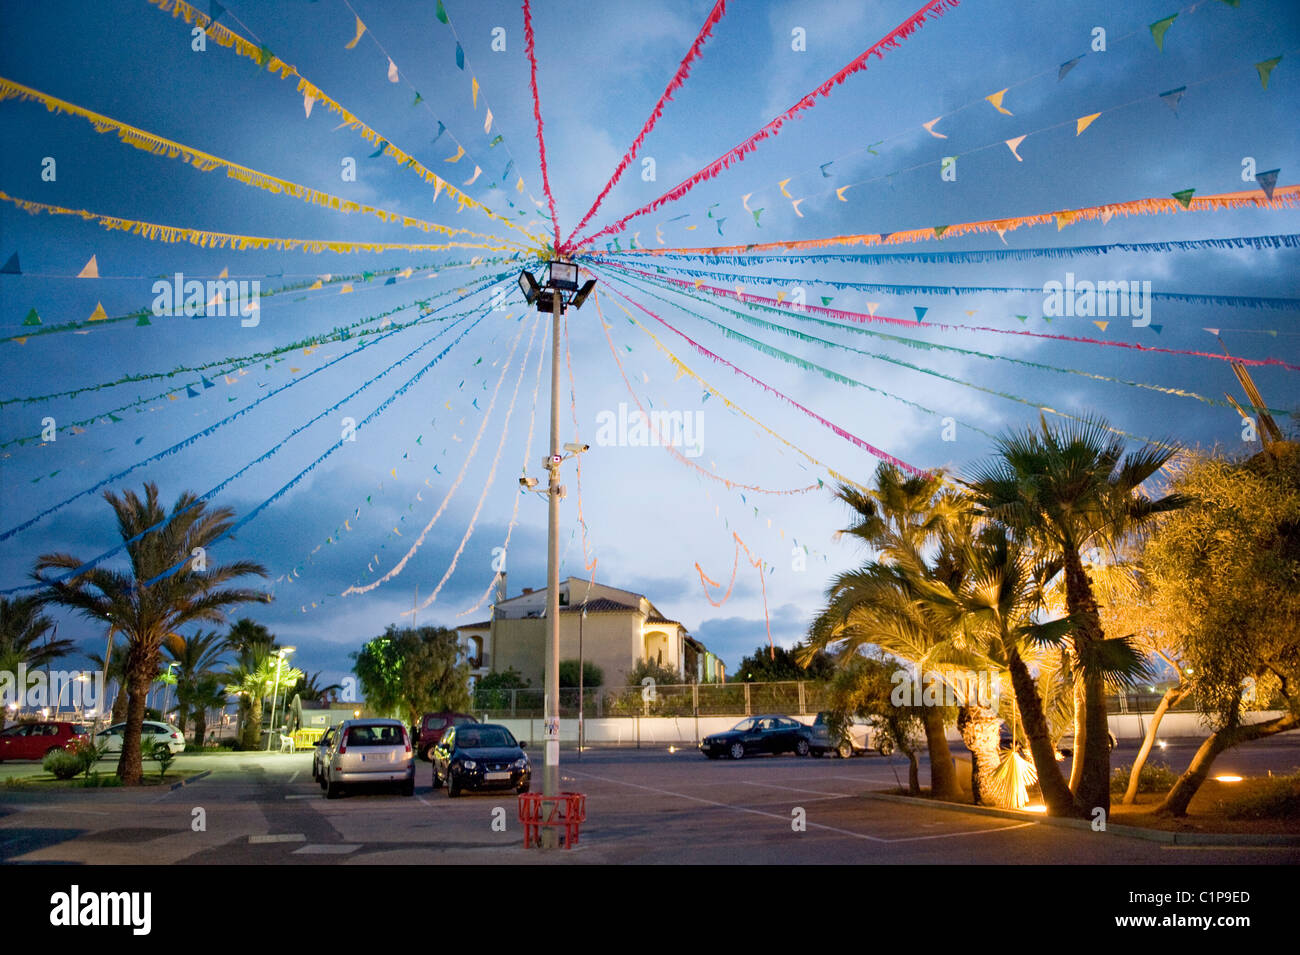 Decorate street al crepuscolo Foto Stock